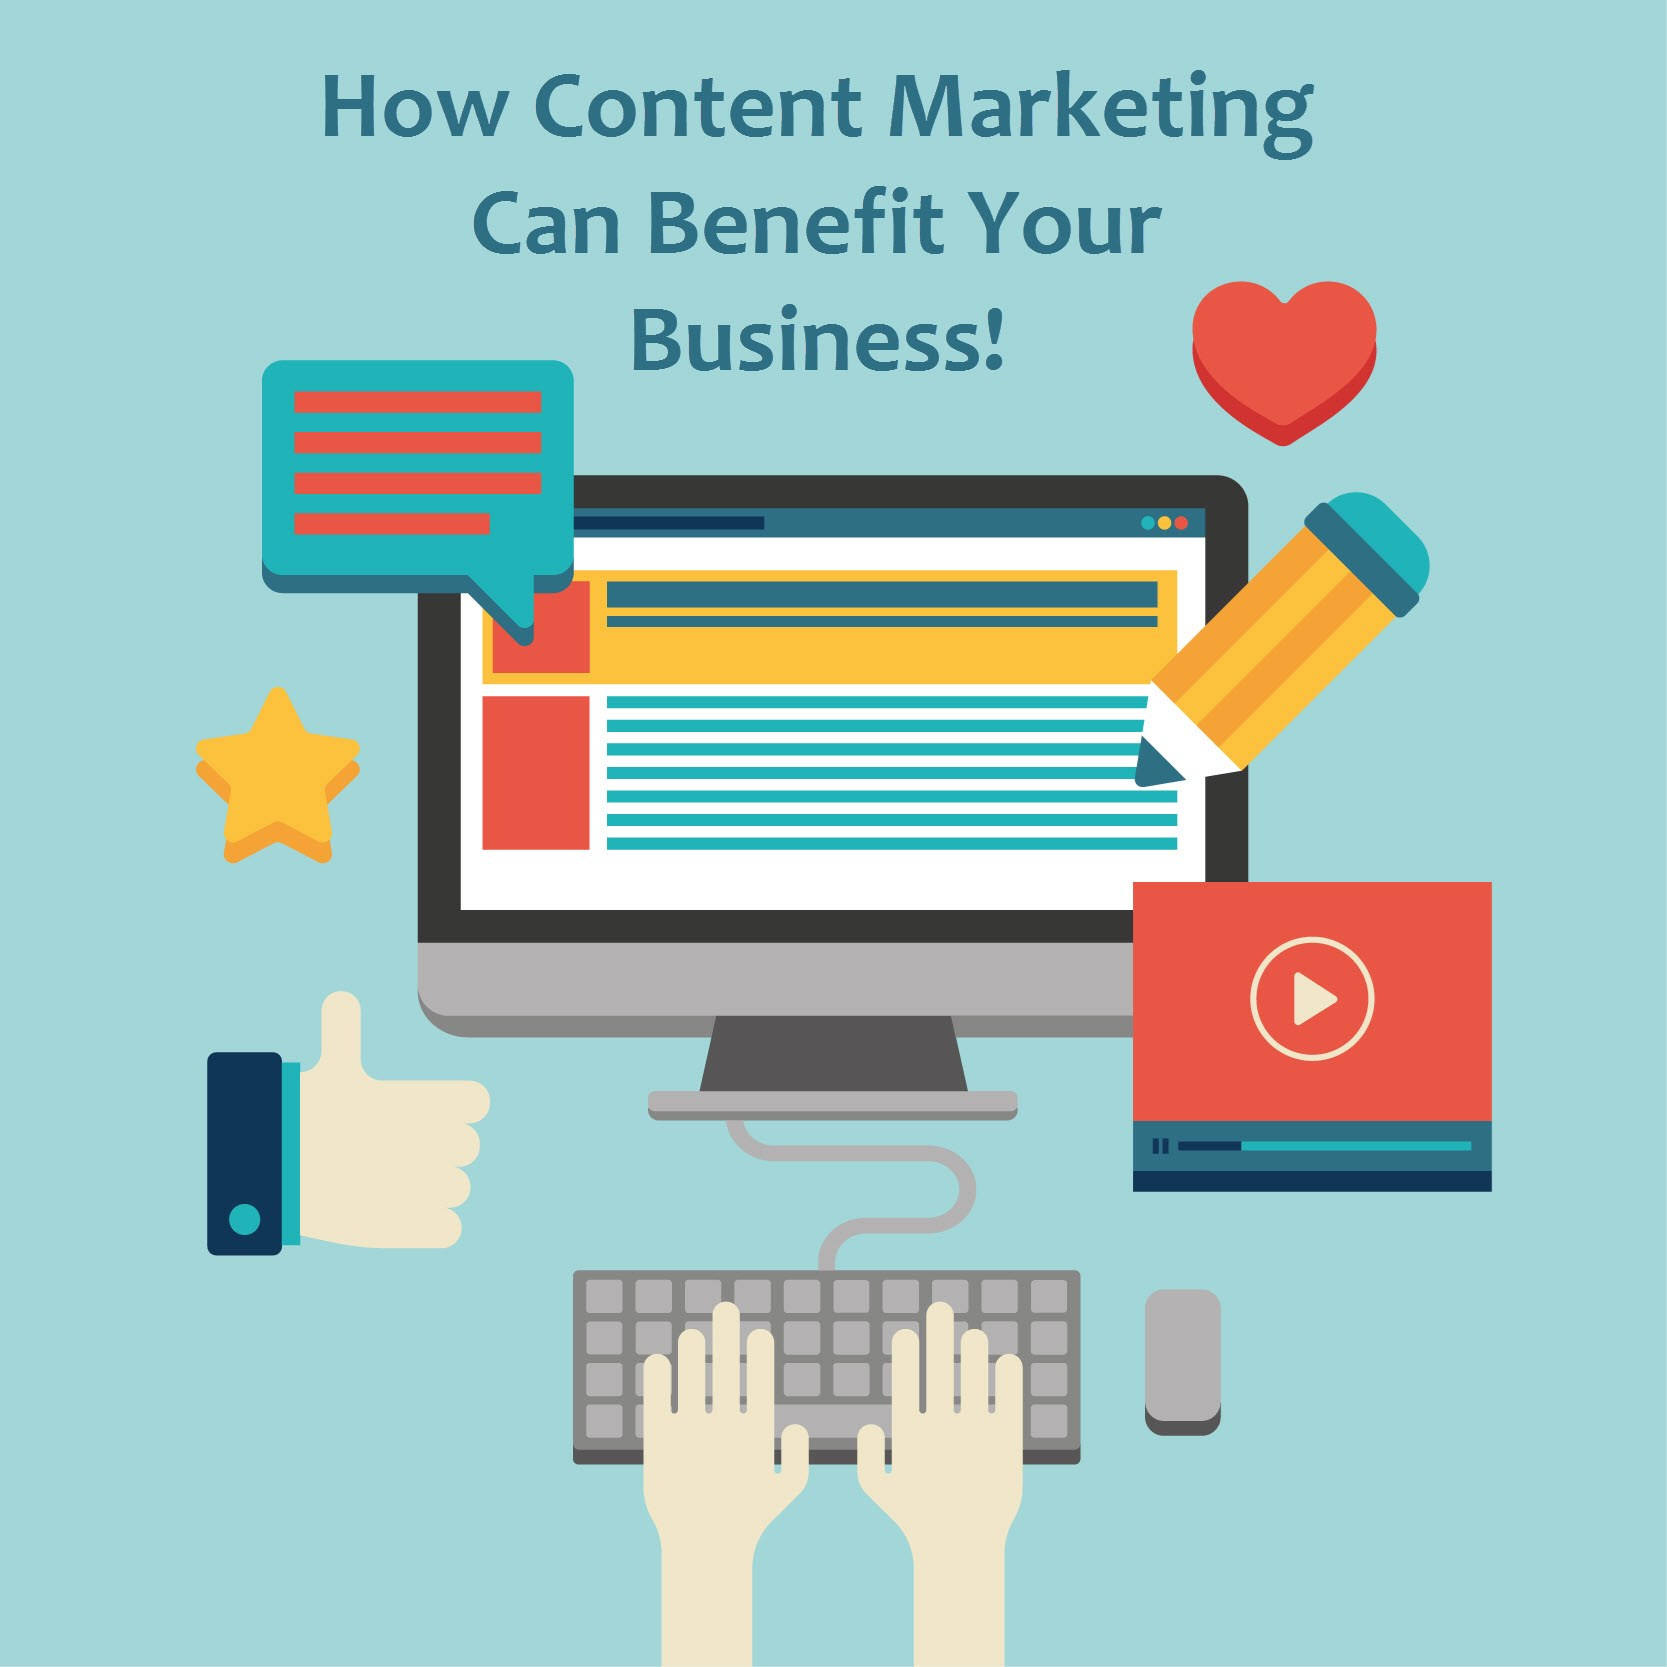 How Can Content Marketing Benefit My Business